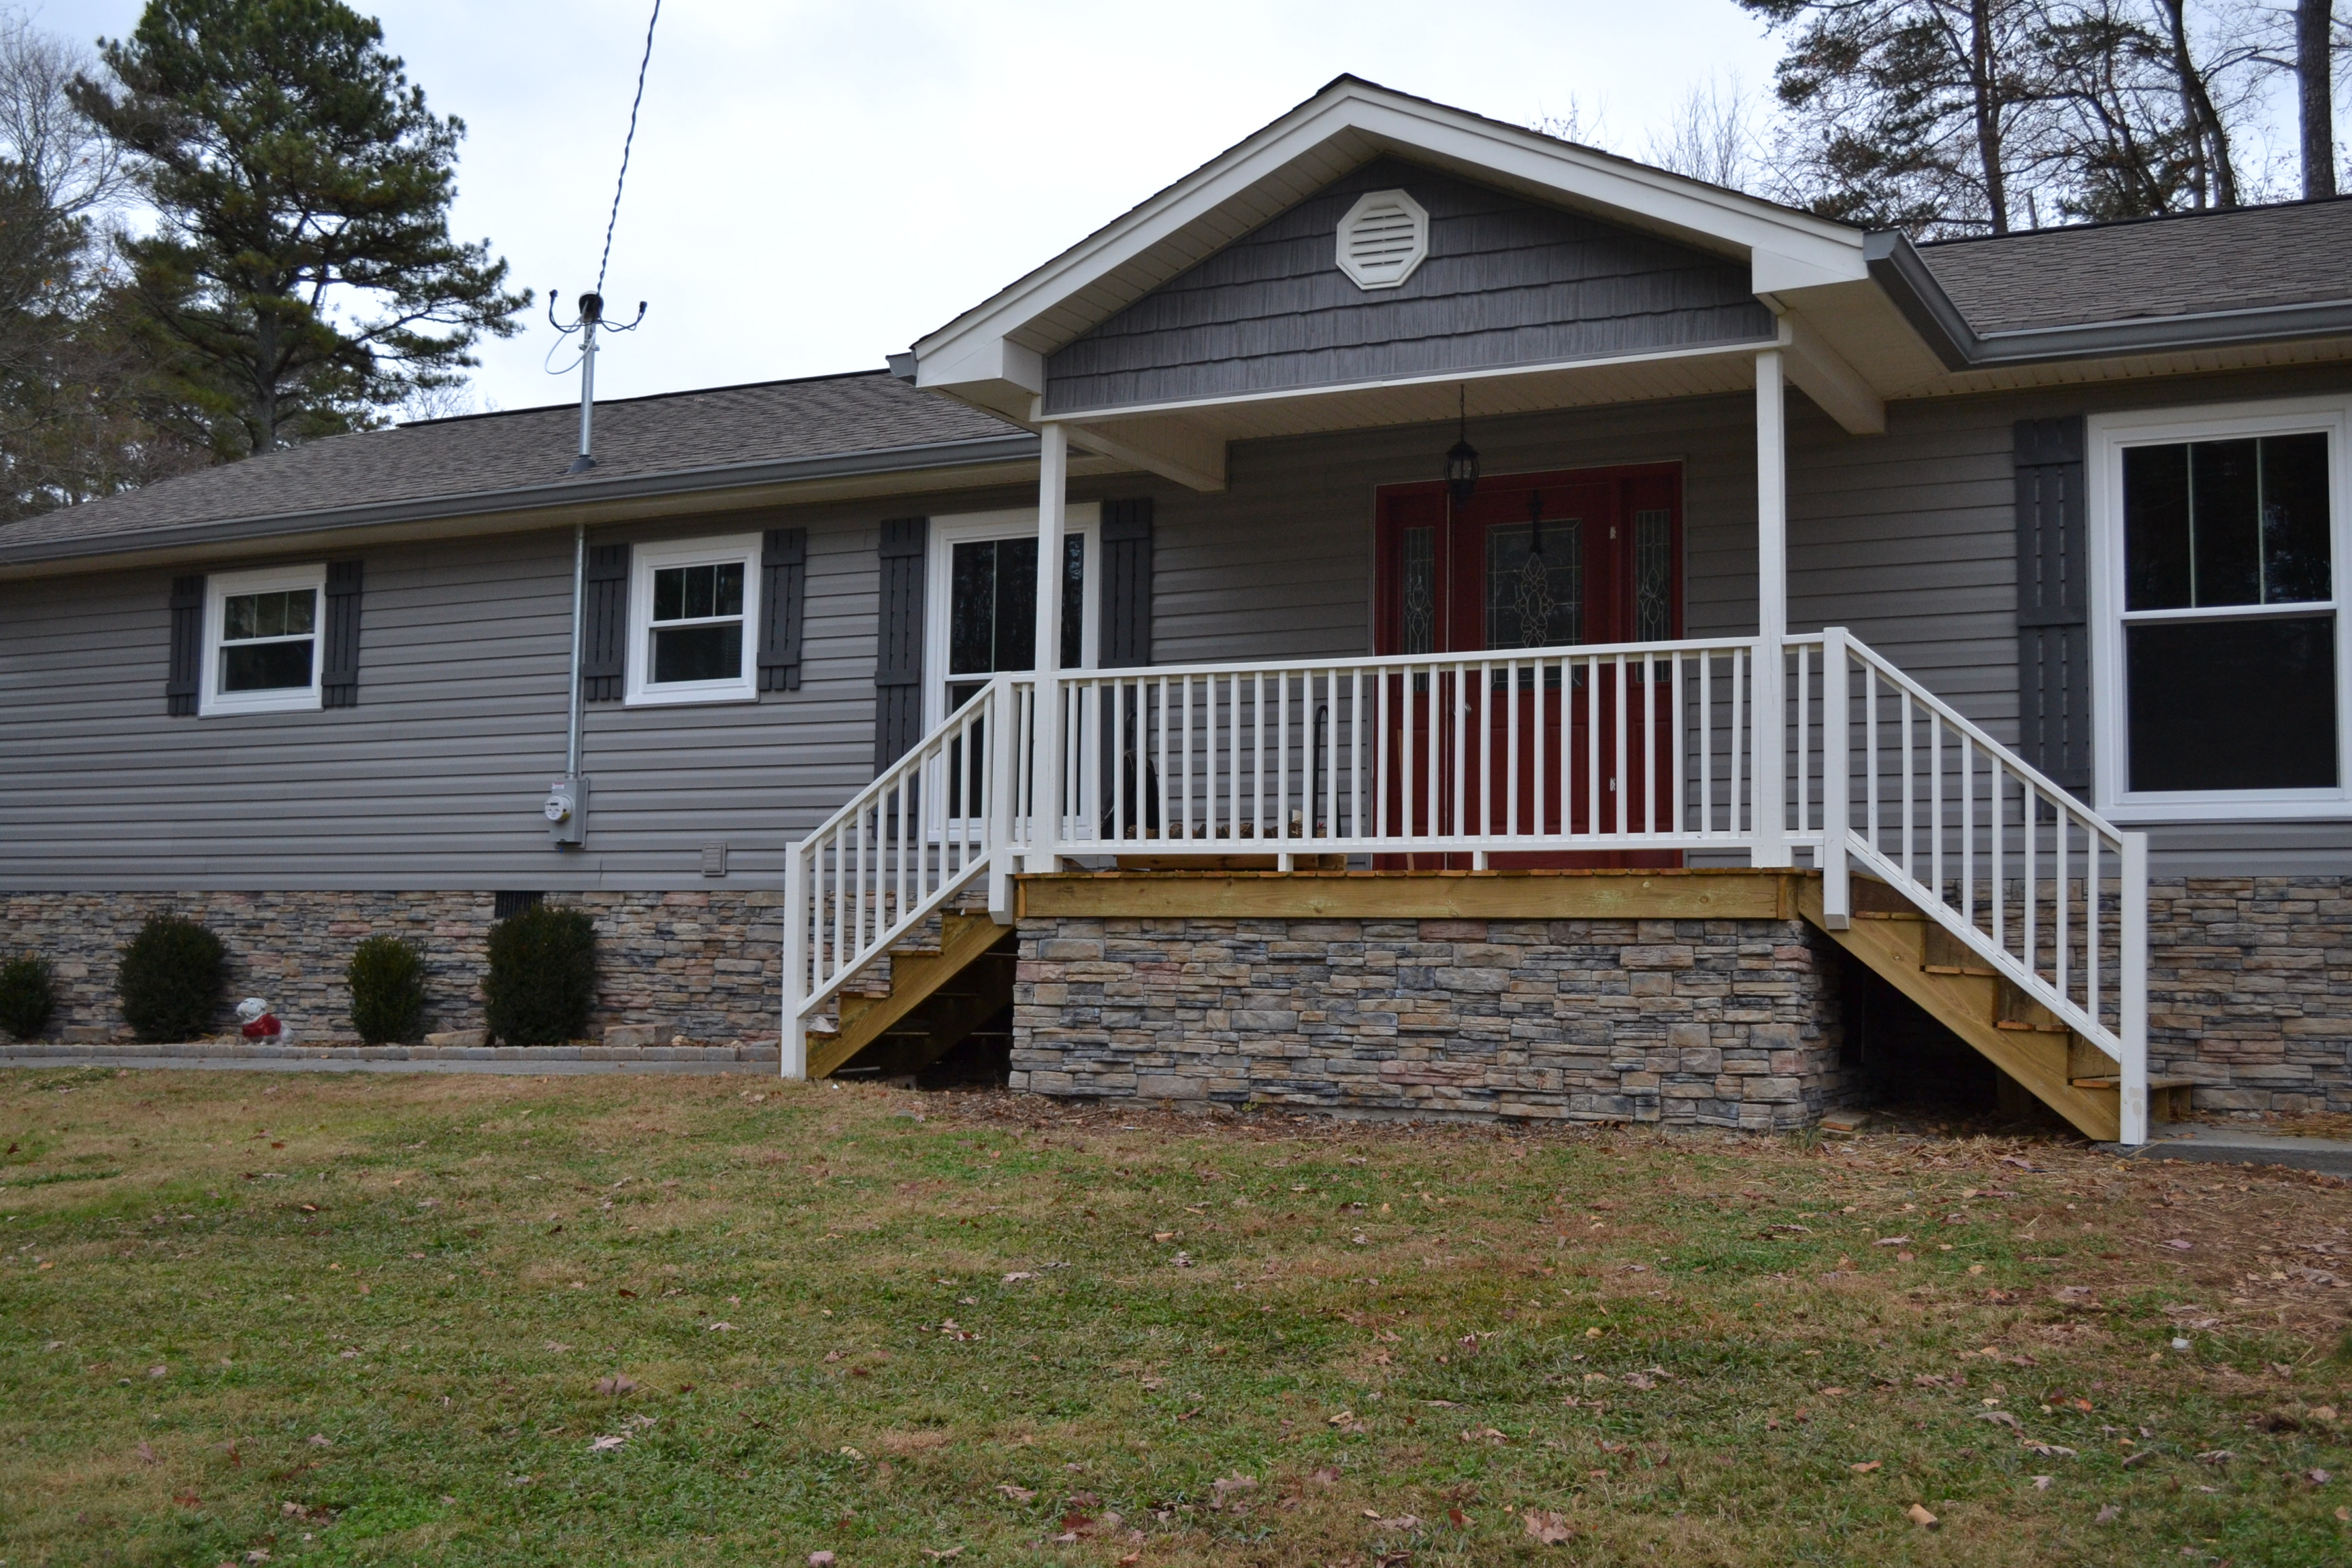 Update your mobile home with stone veneer siding!